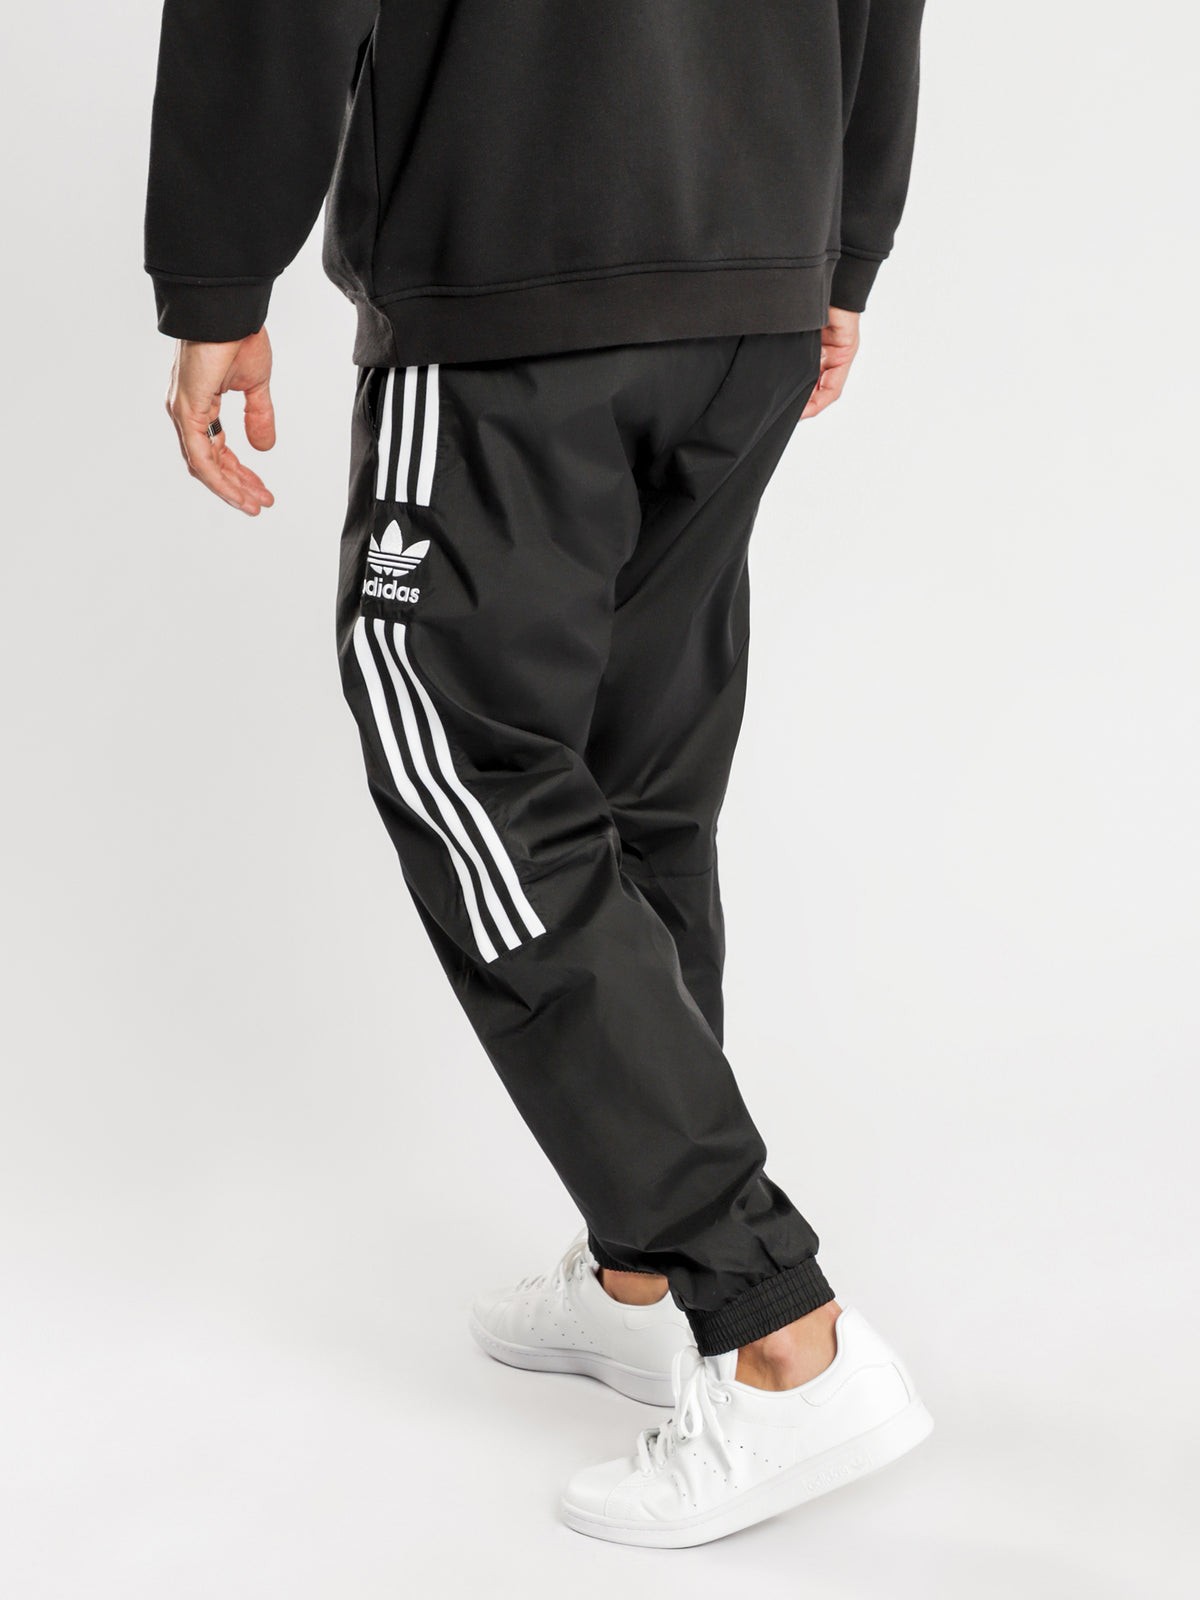 Lock Up Track Pants in Black